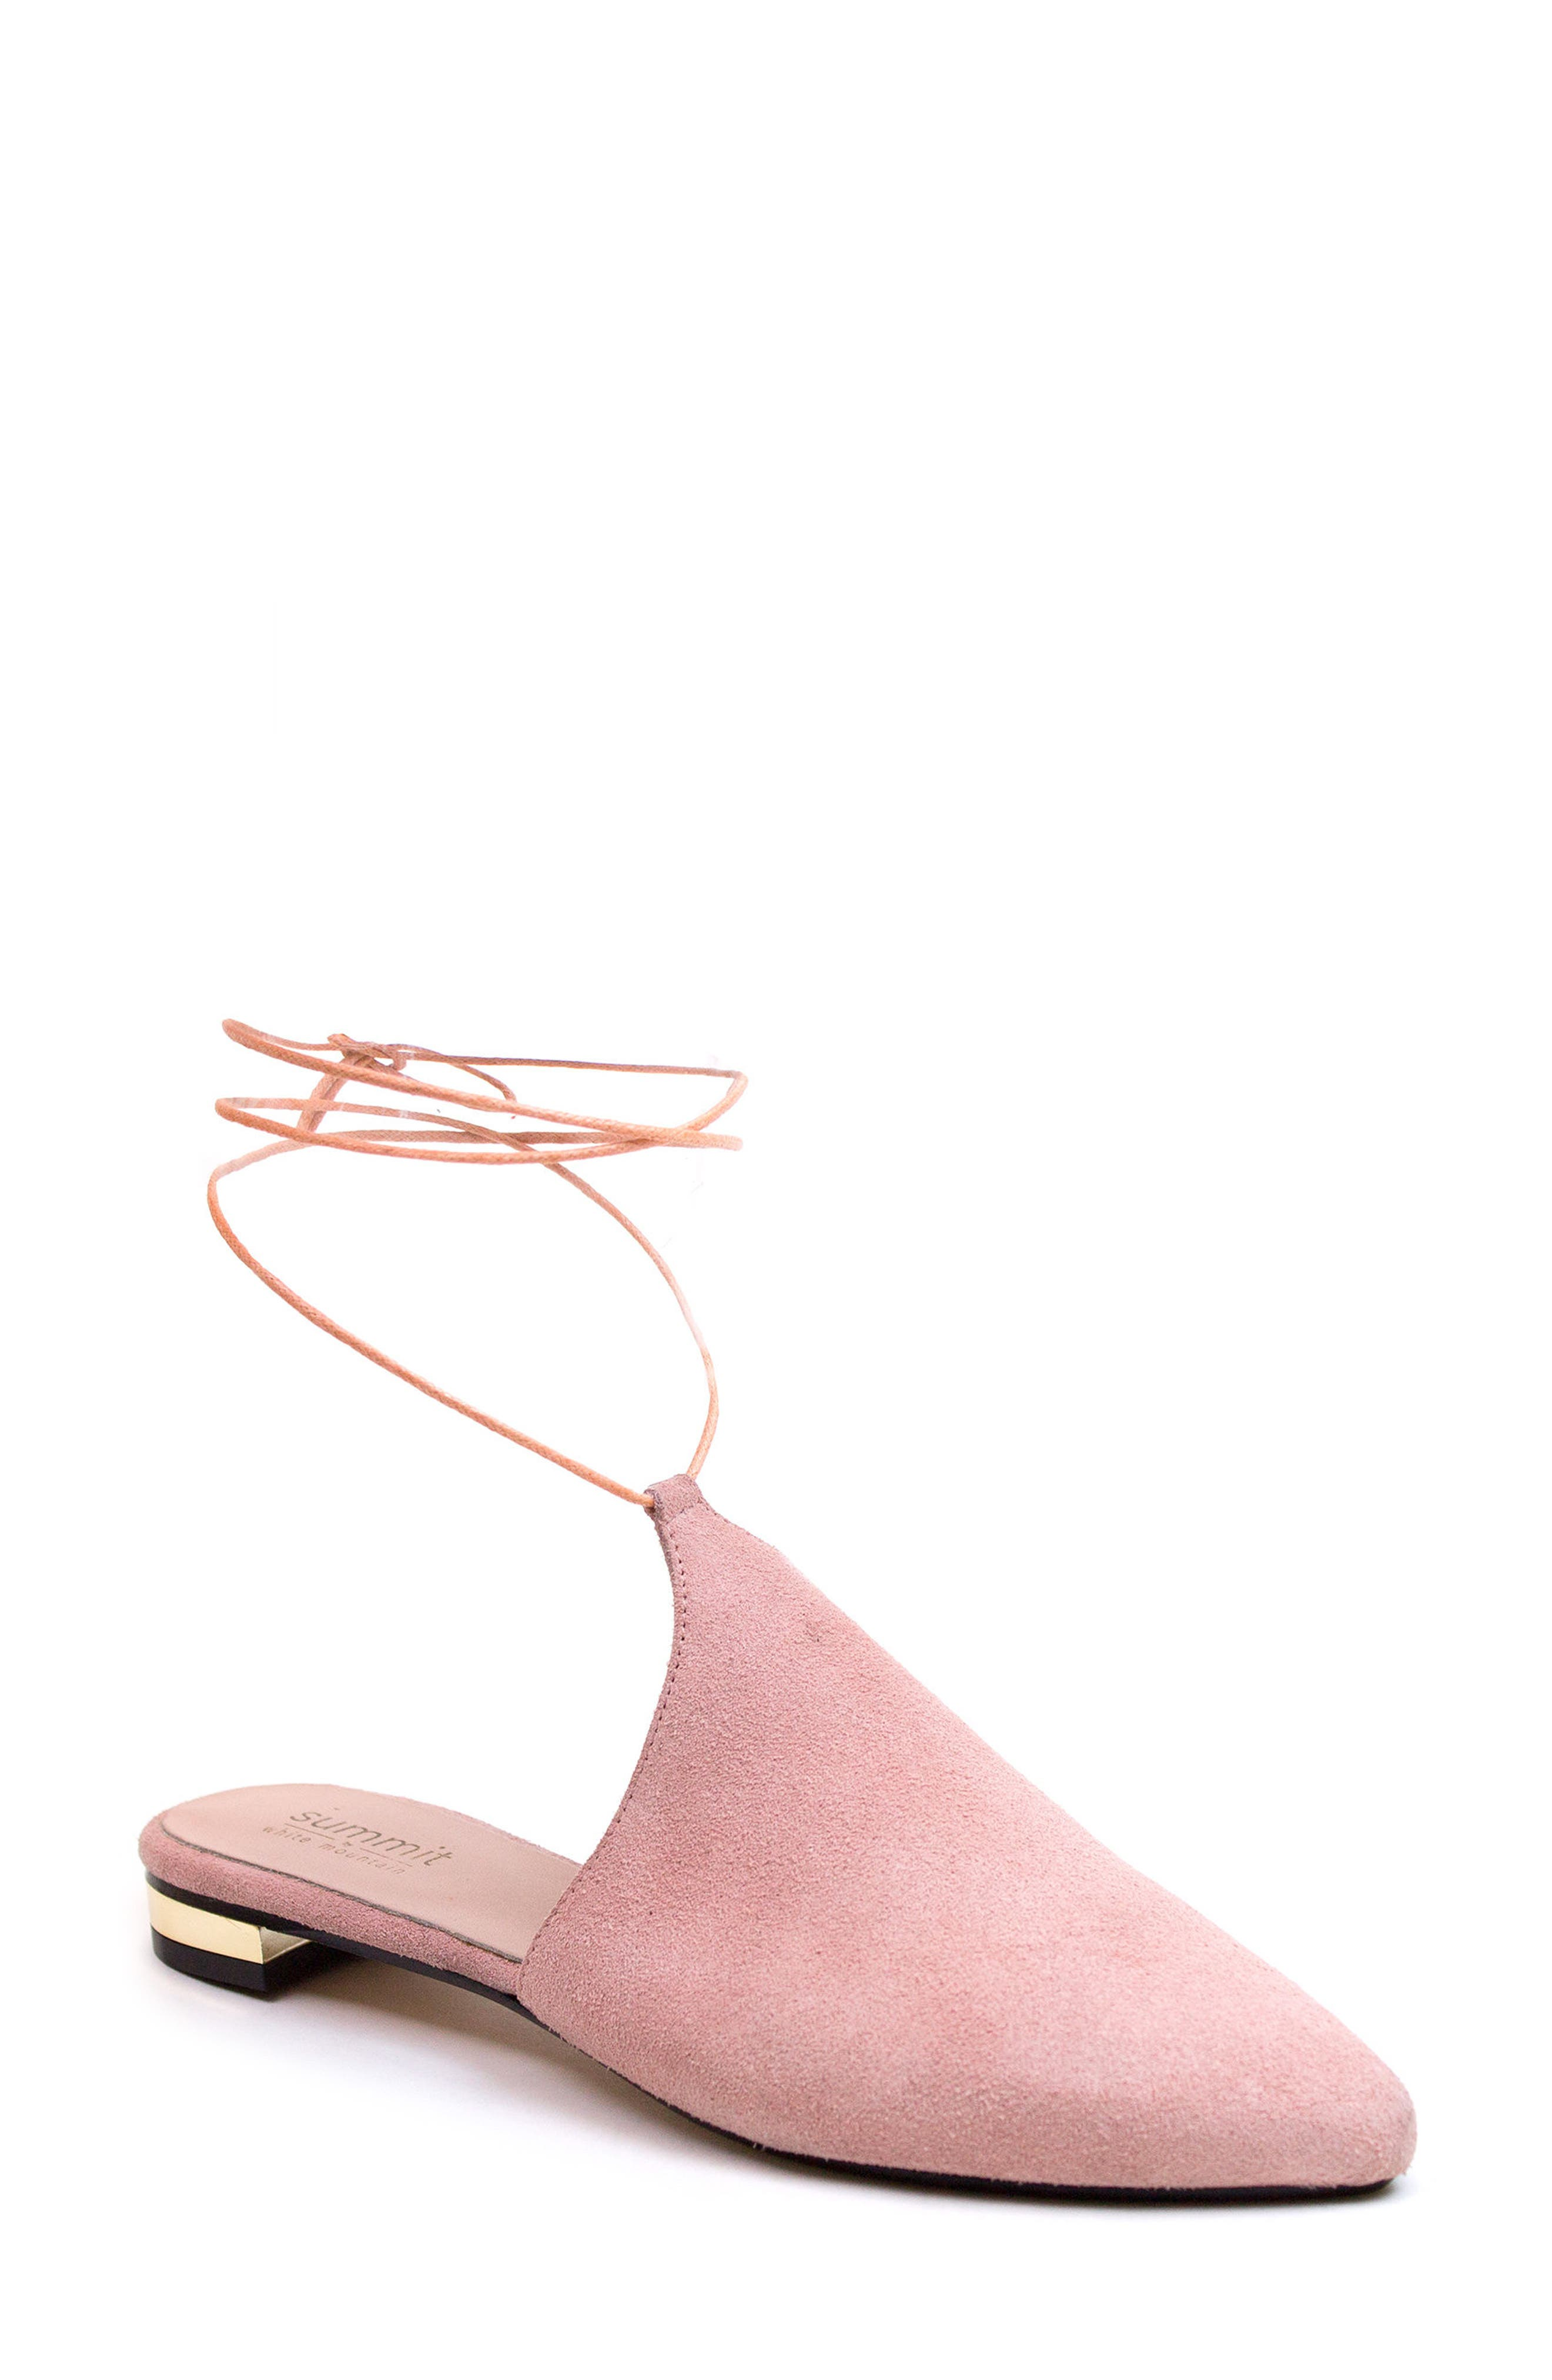 SUMMIT Kalea Ankle Tie Mule